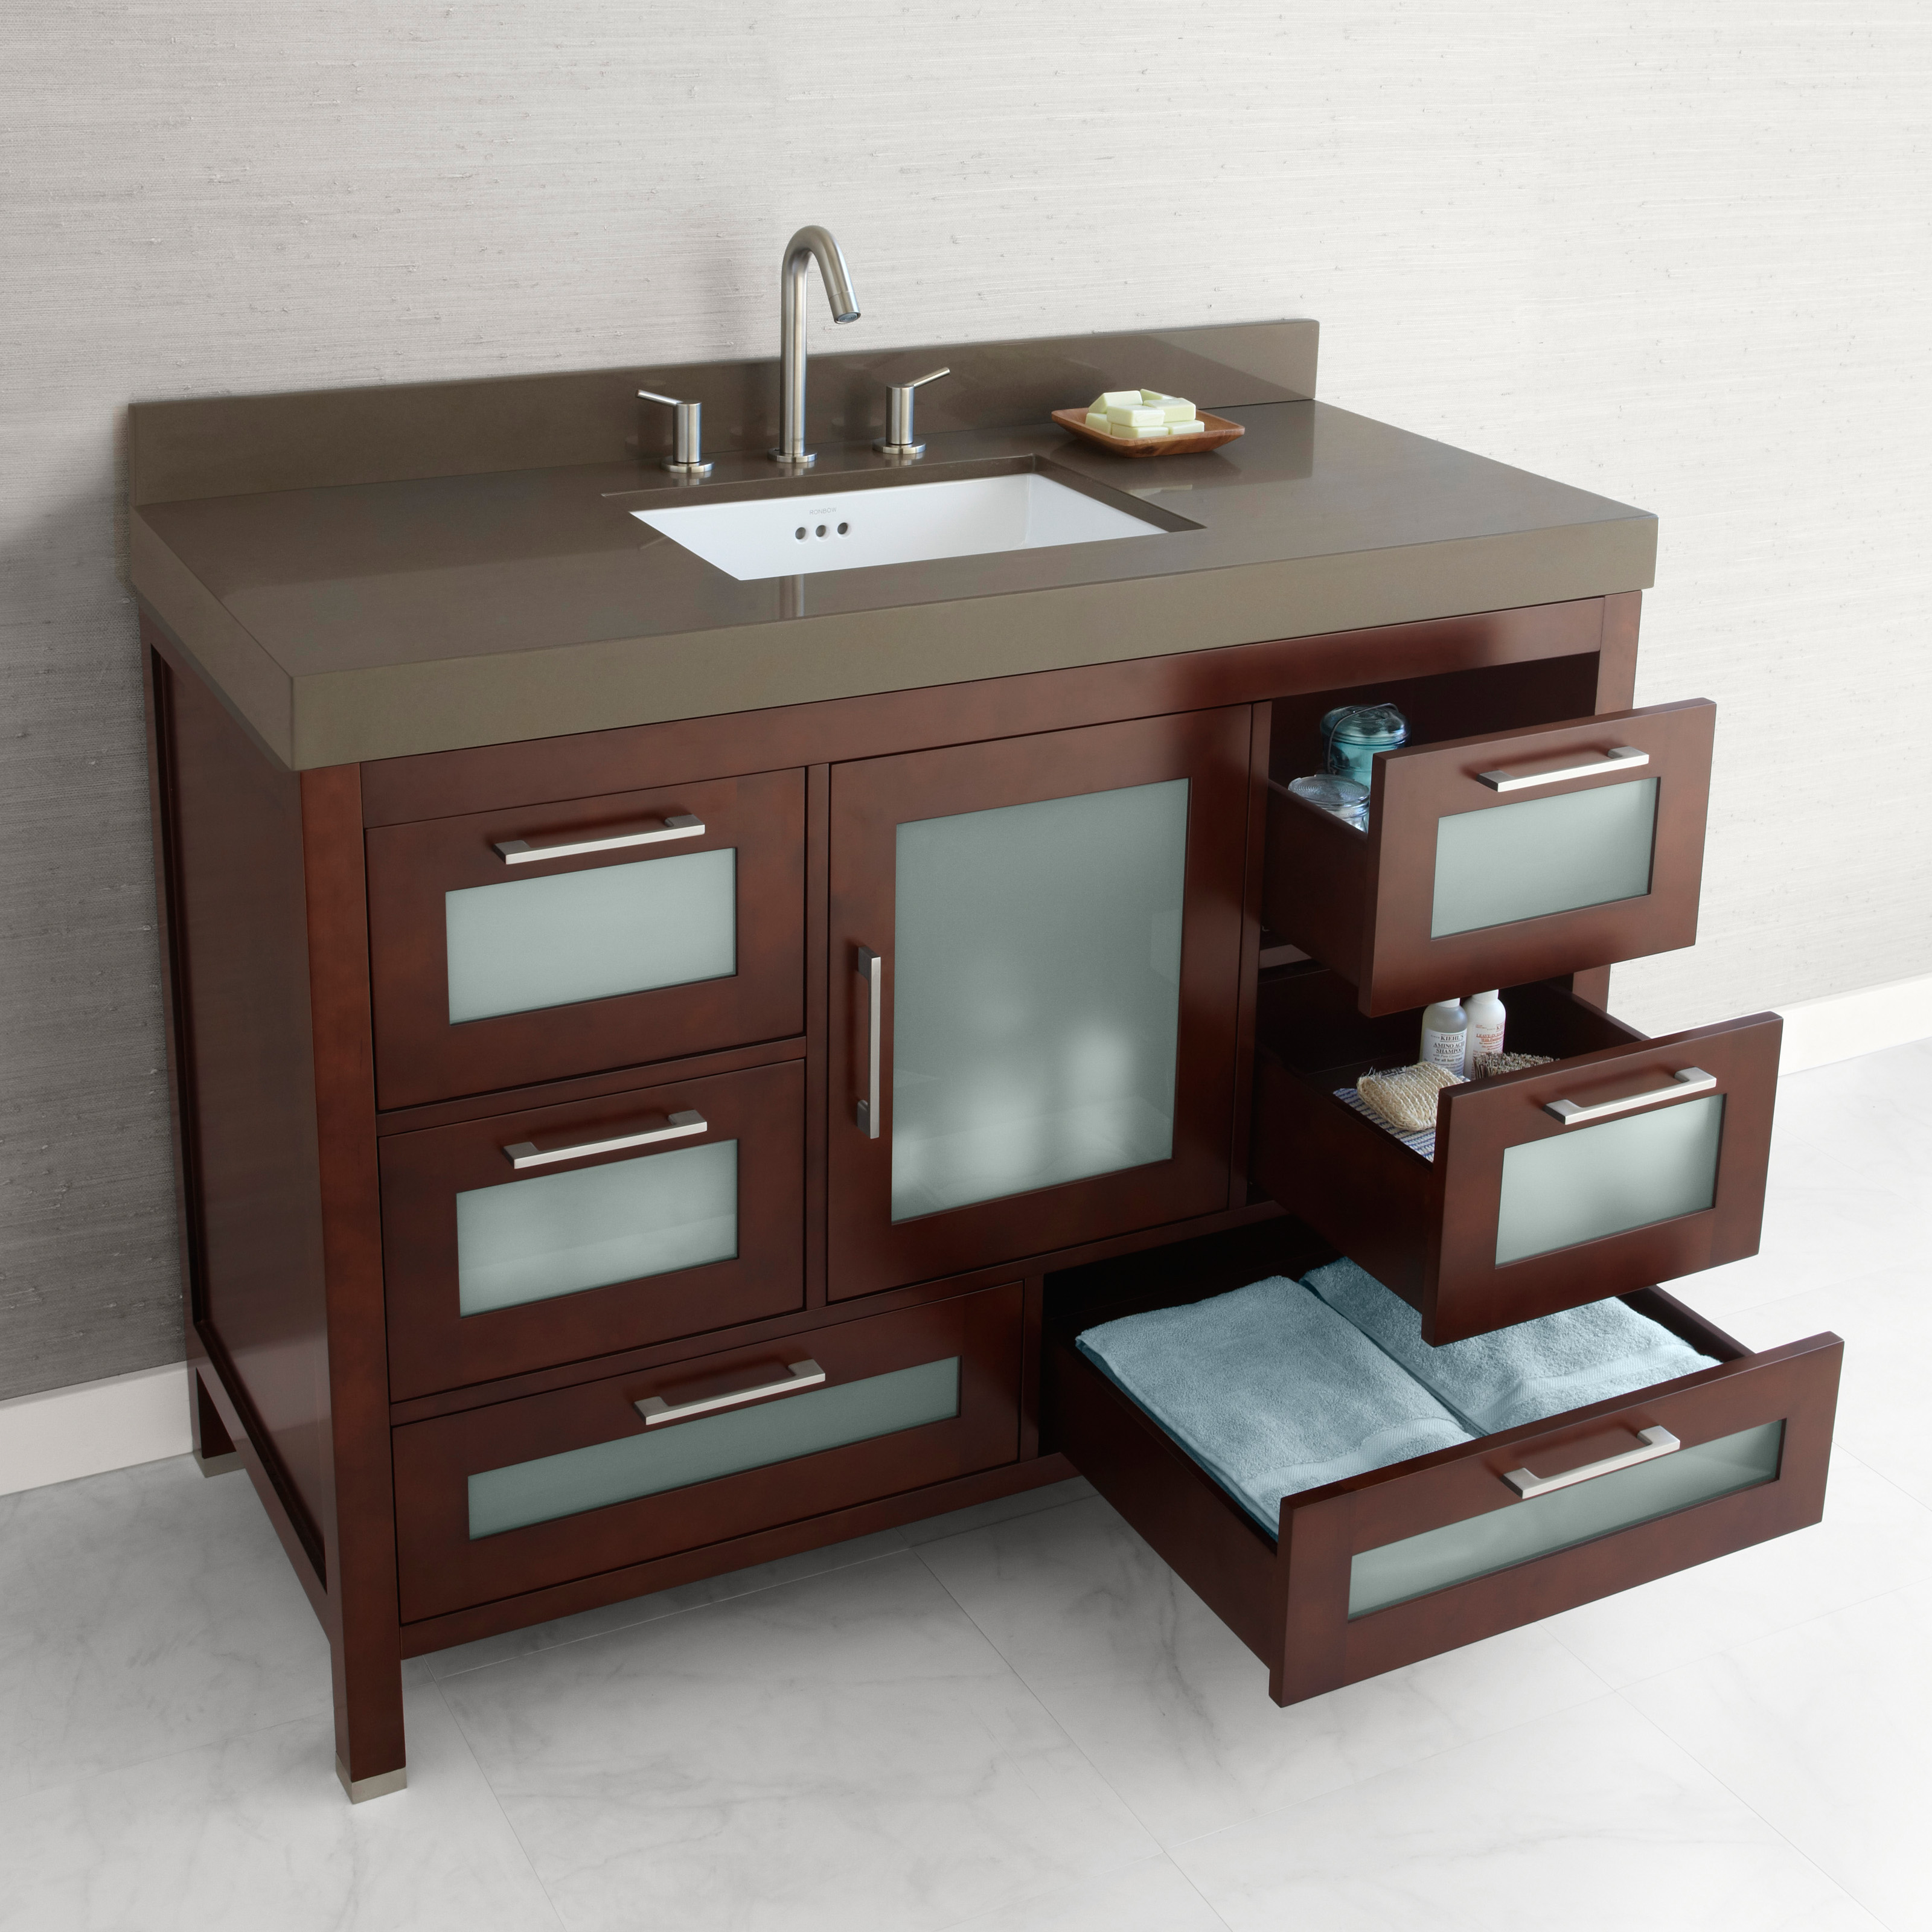 kitchen vanity cabinets ronbow 031548 athena 48 in single bathroom vanity with 3432